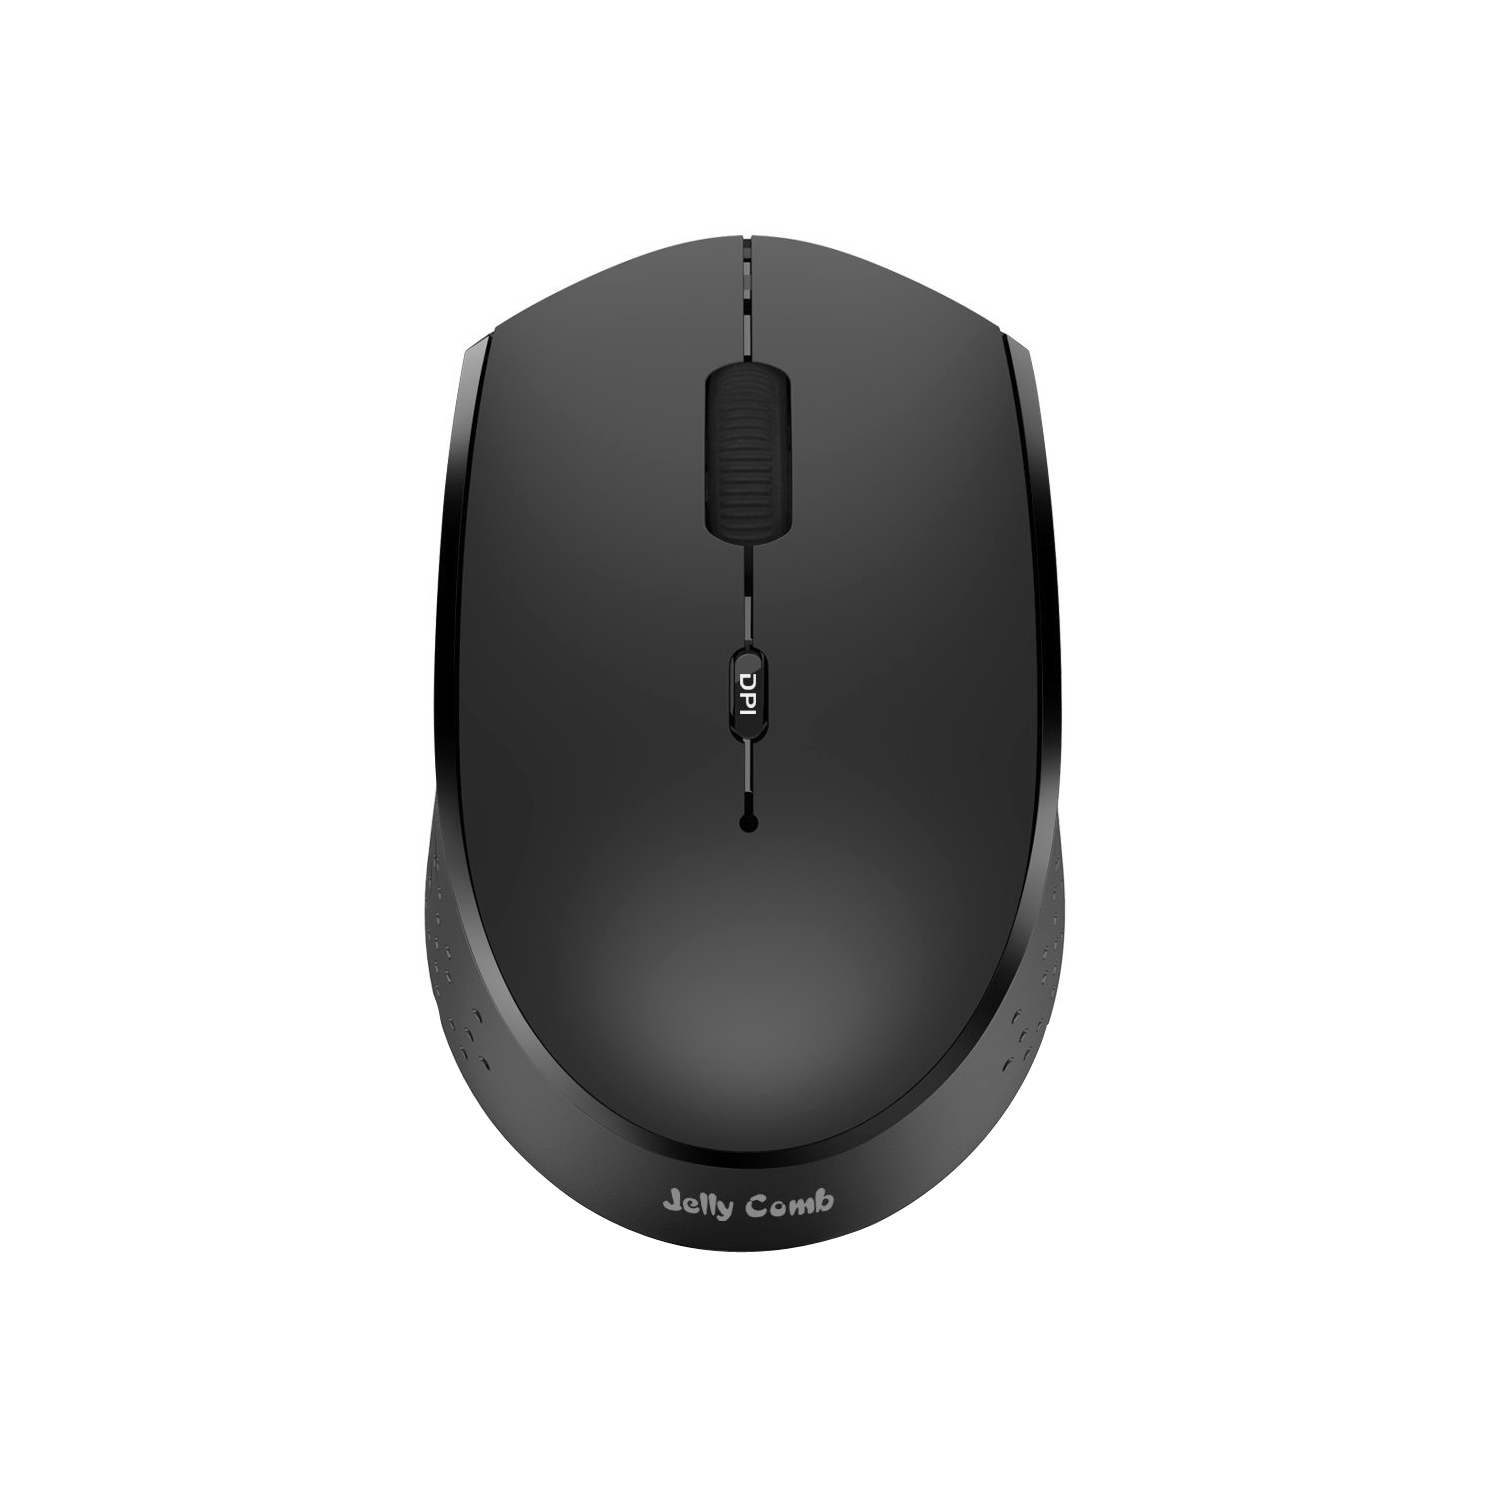 US$ 22.99 - Wireless Type-C Mouse M006 - www.jellycomb.com